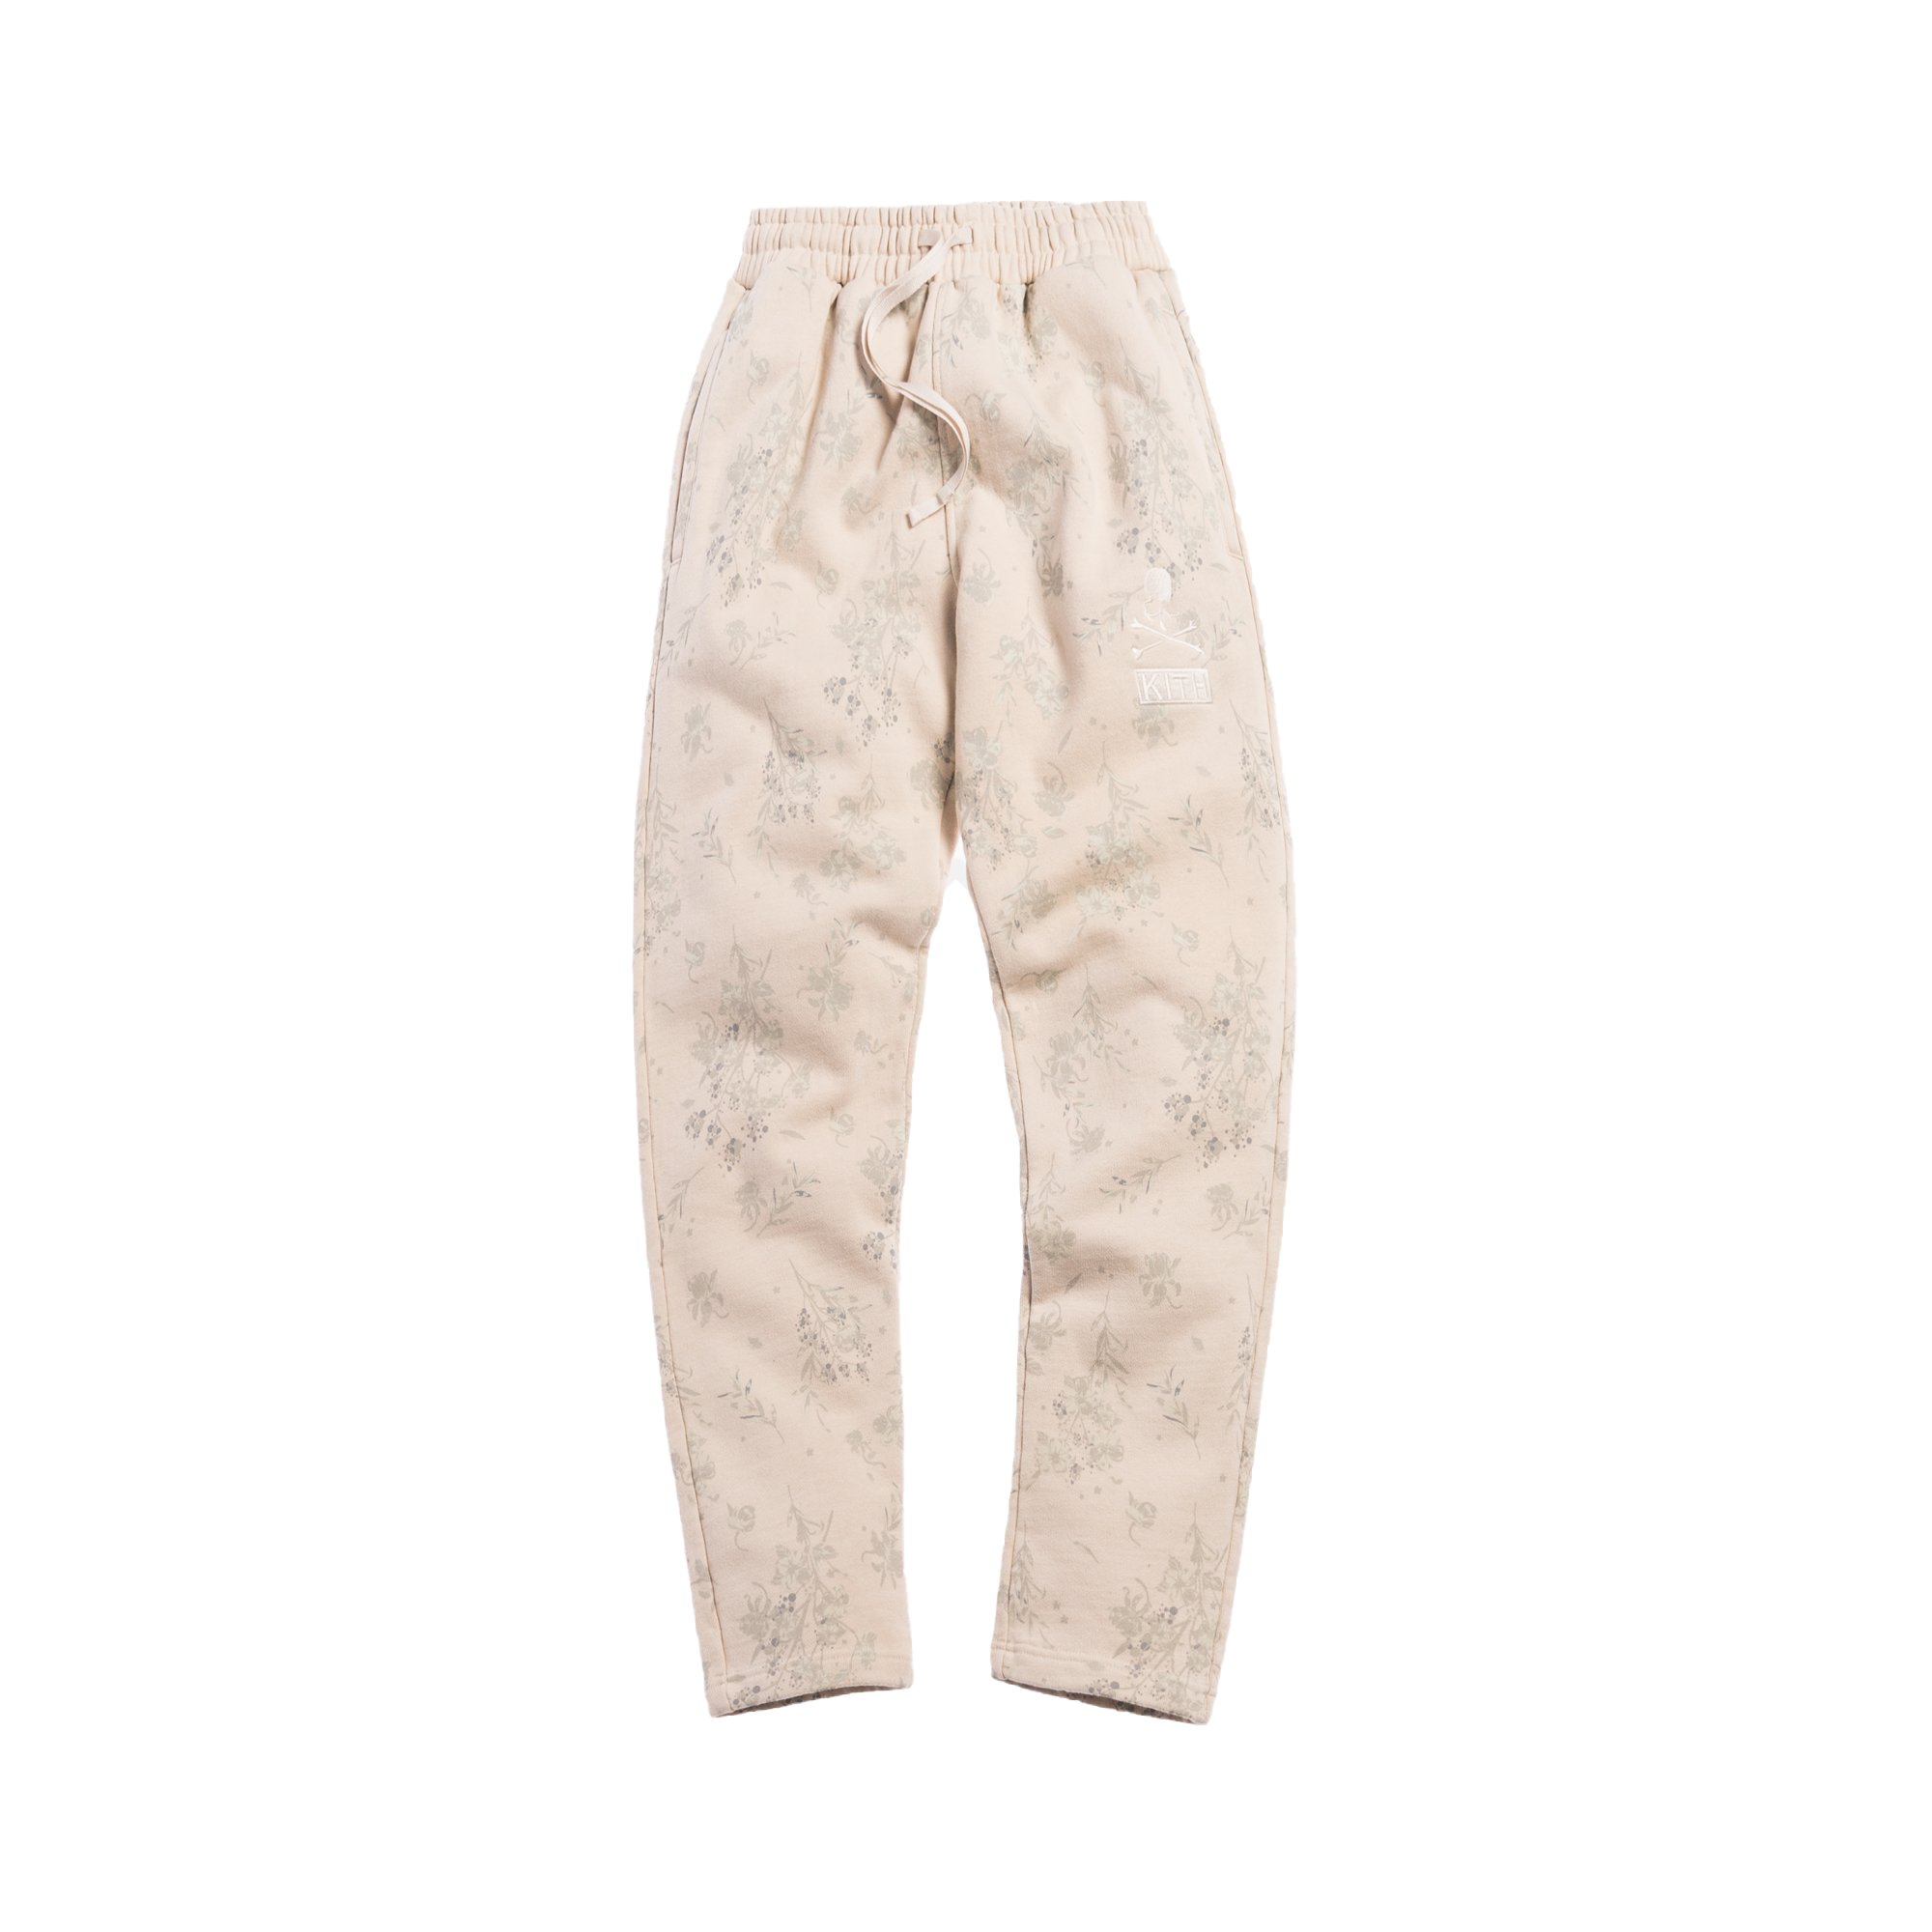 Kith x mastermind WORLD Fleece Sweatpants Turtle Dove